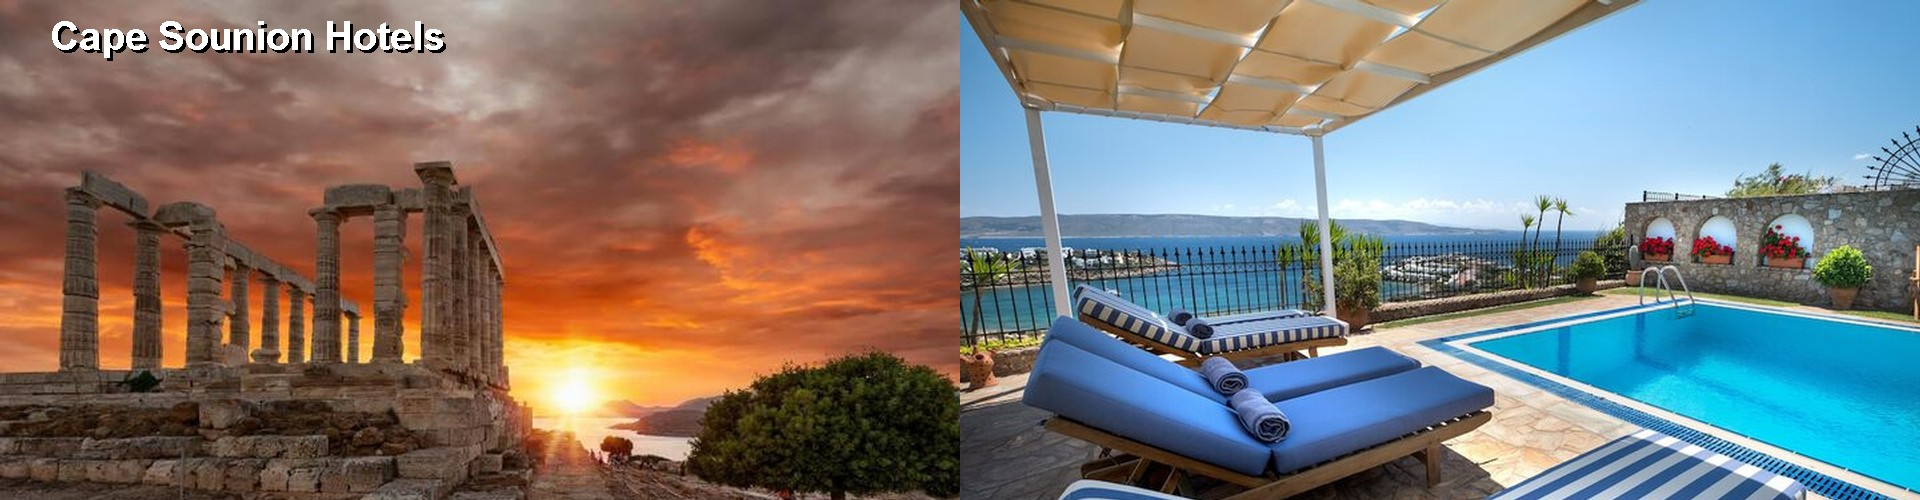 5 Best Hotels near Cape Sounion